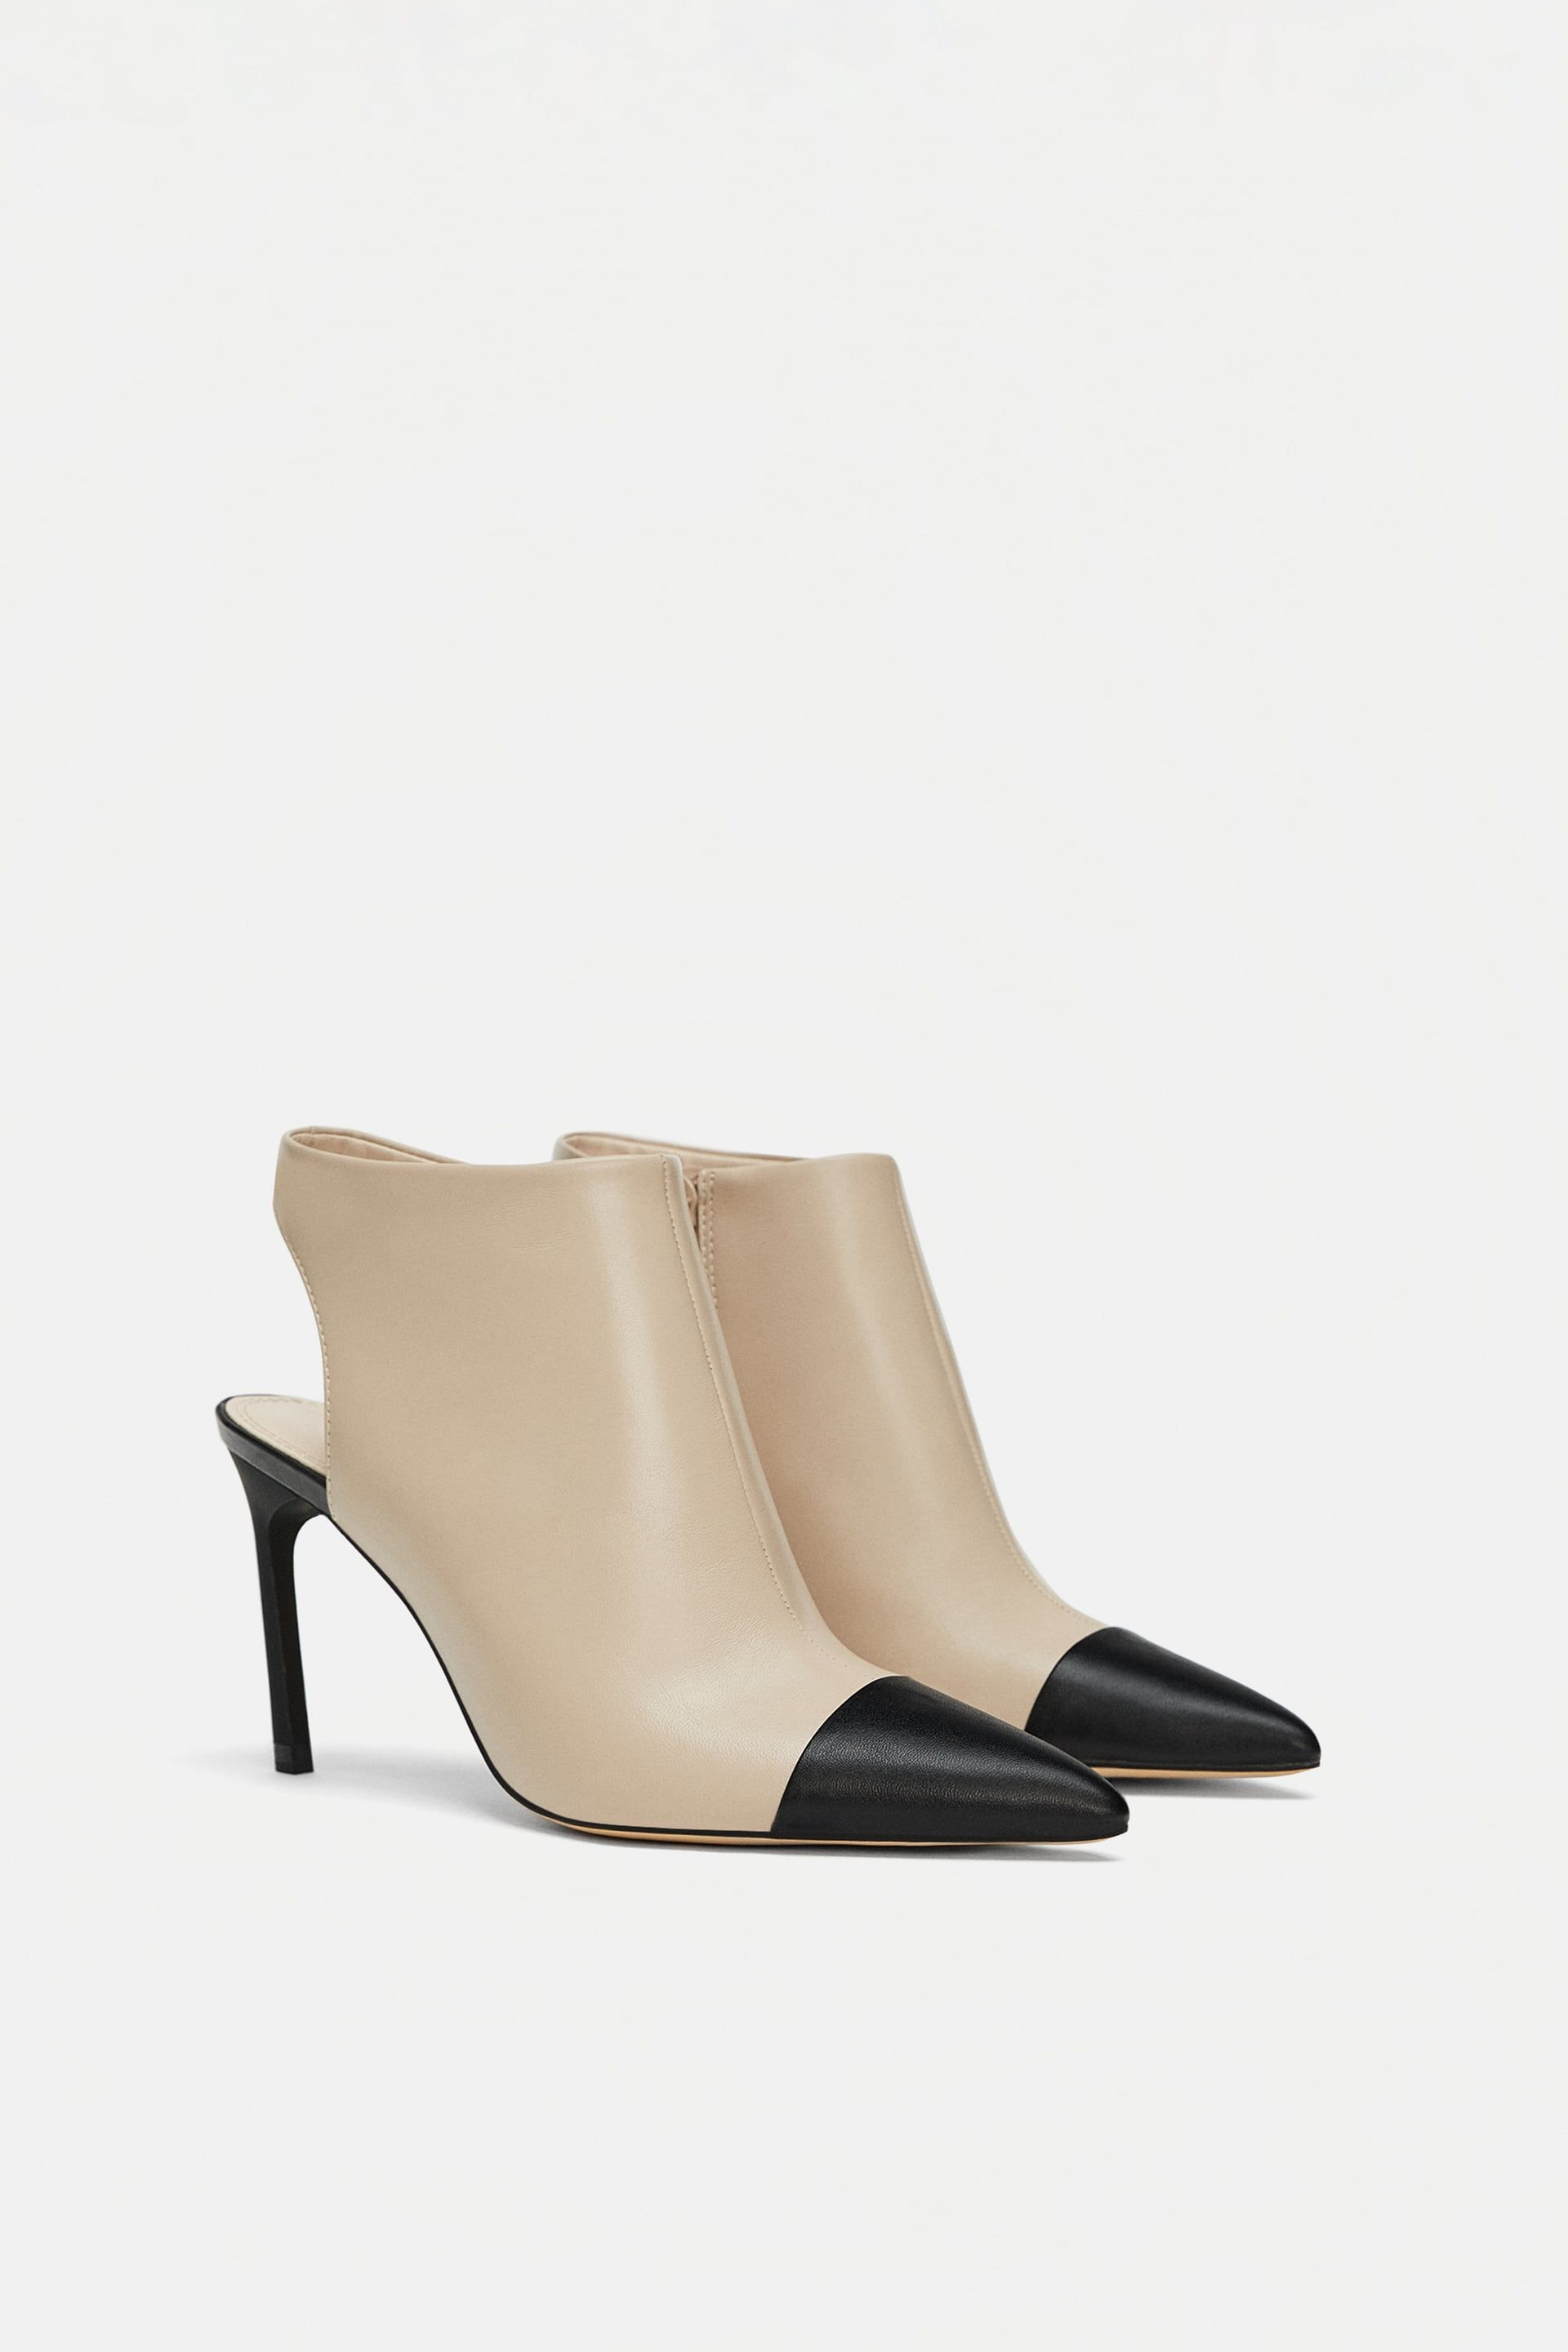 761b326c482 Image 1 of HIGH HEELED SLINGBACK ANKLE BOOTS from Zara